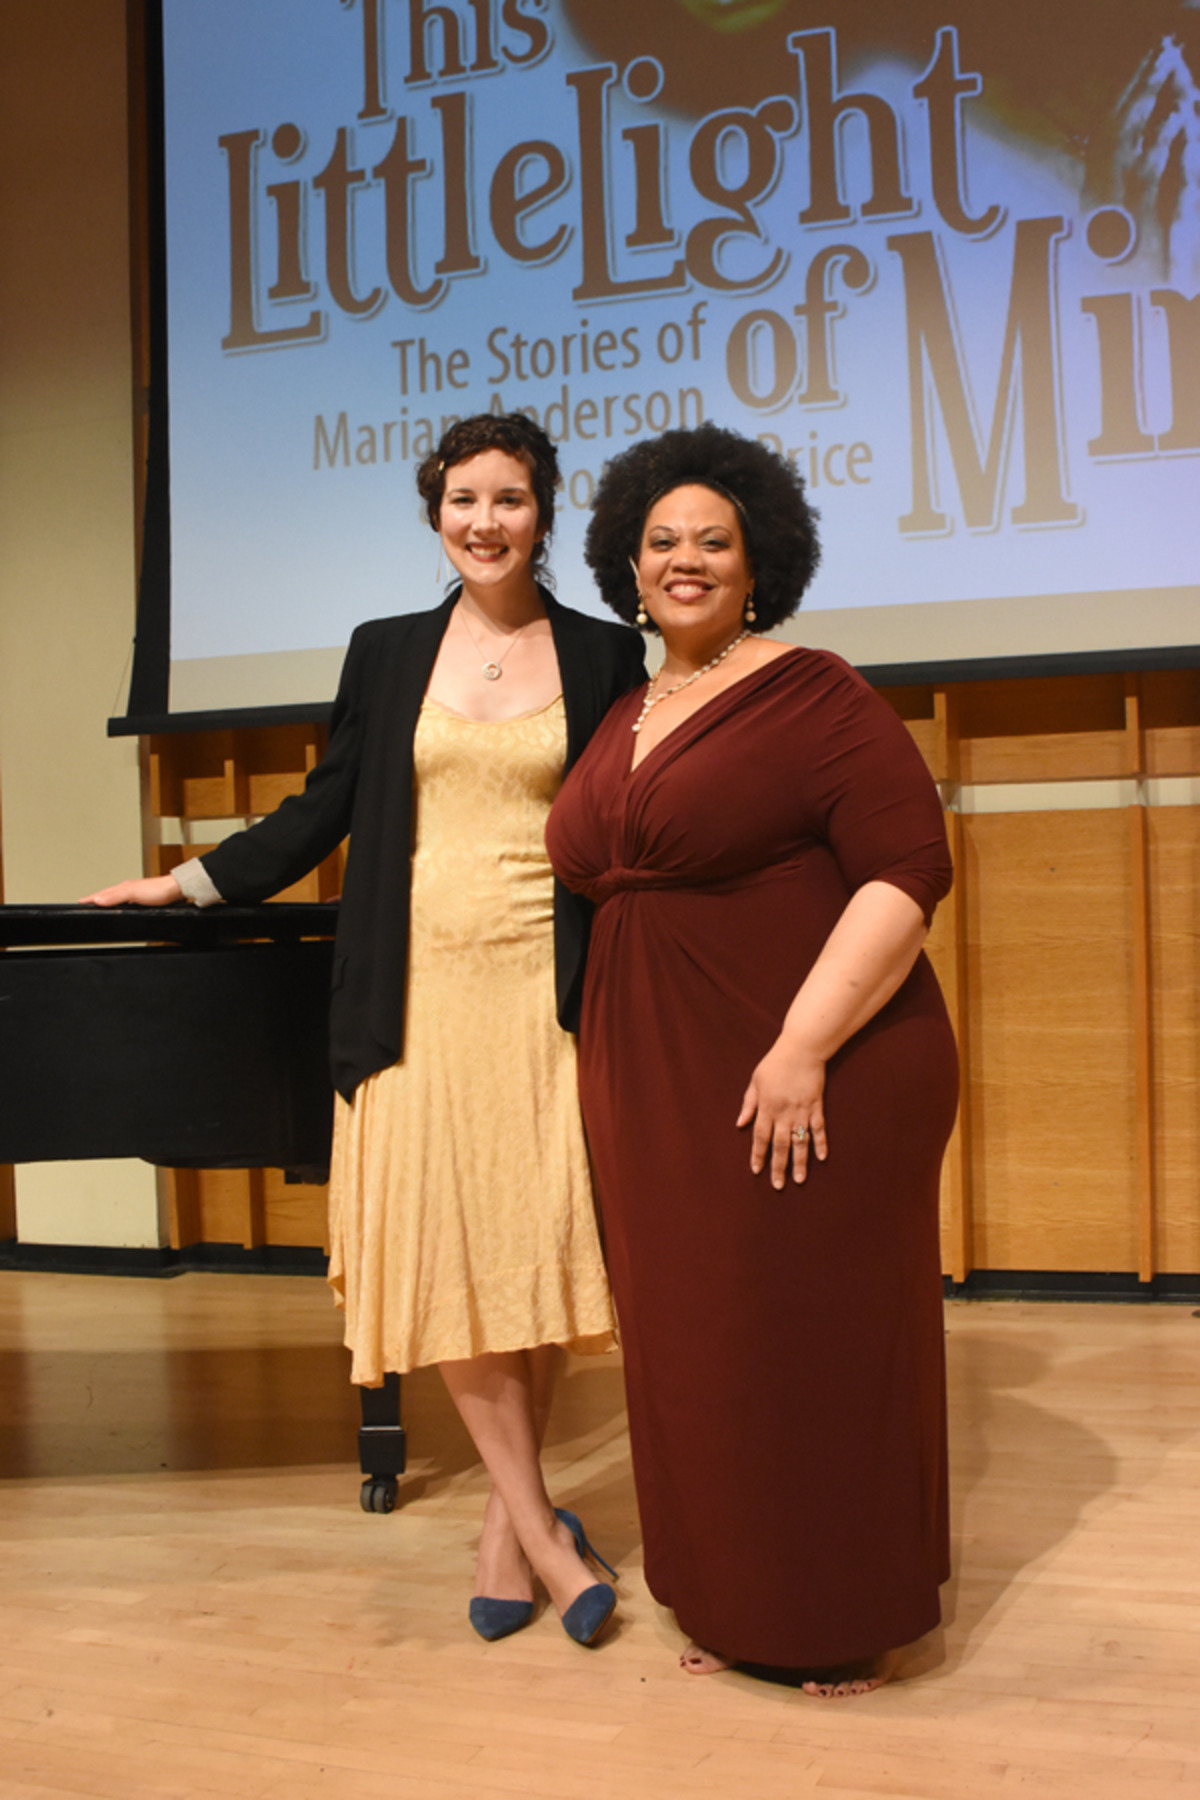 Pictured: Mila Henry and Adrienne Danrich Photo by Tina Buckman